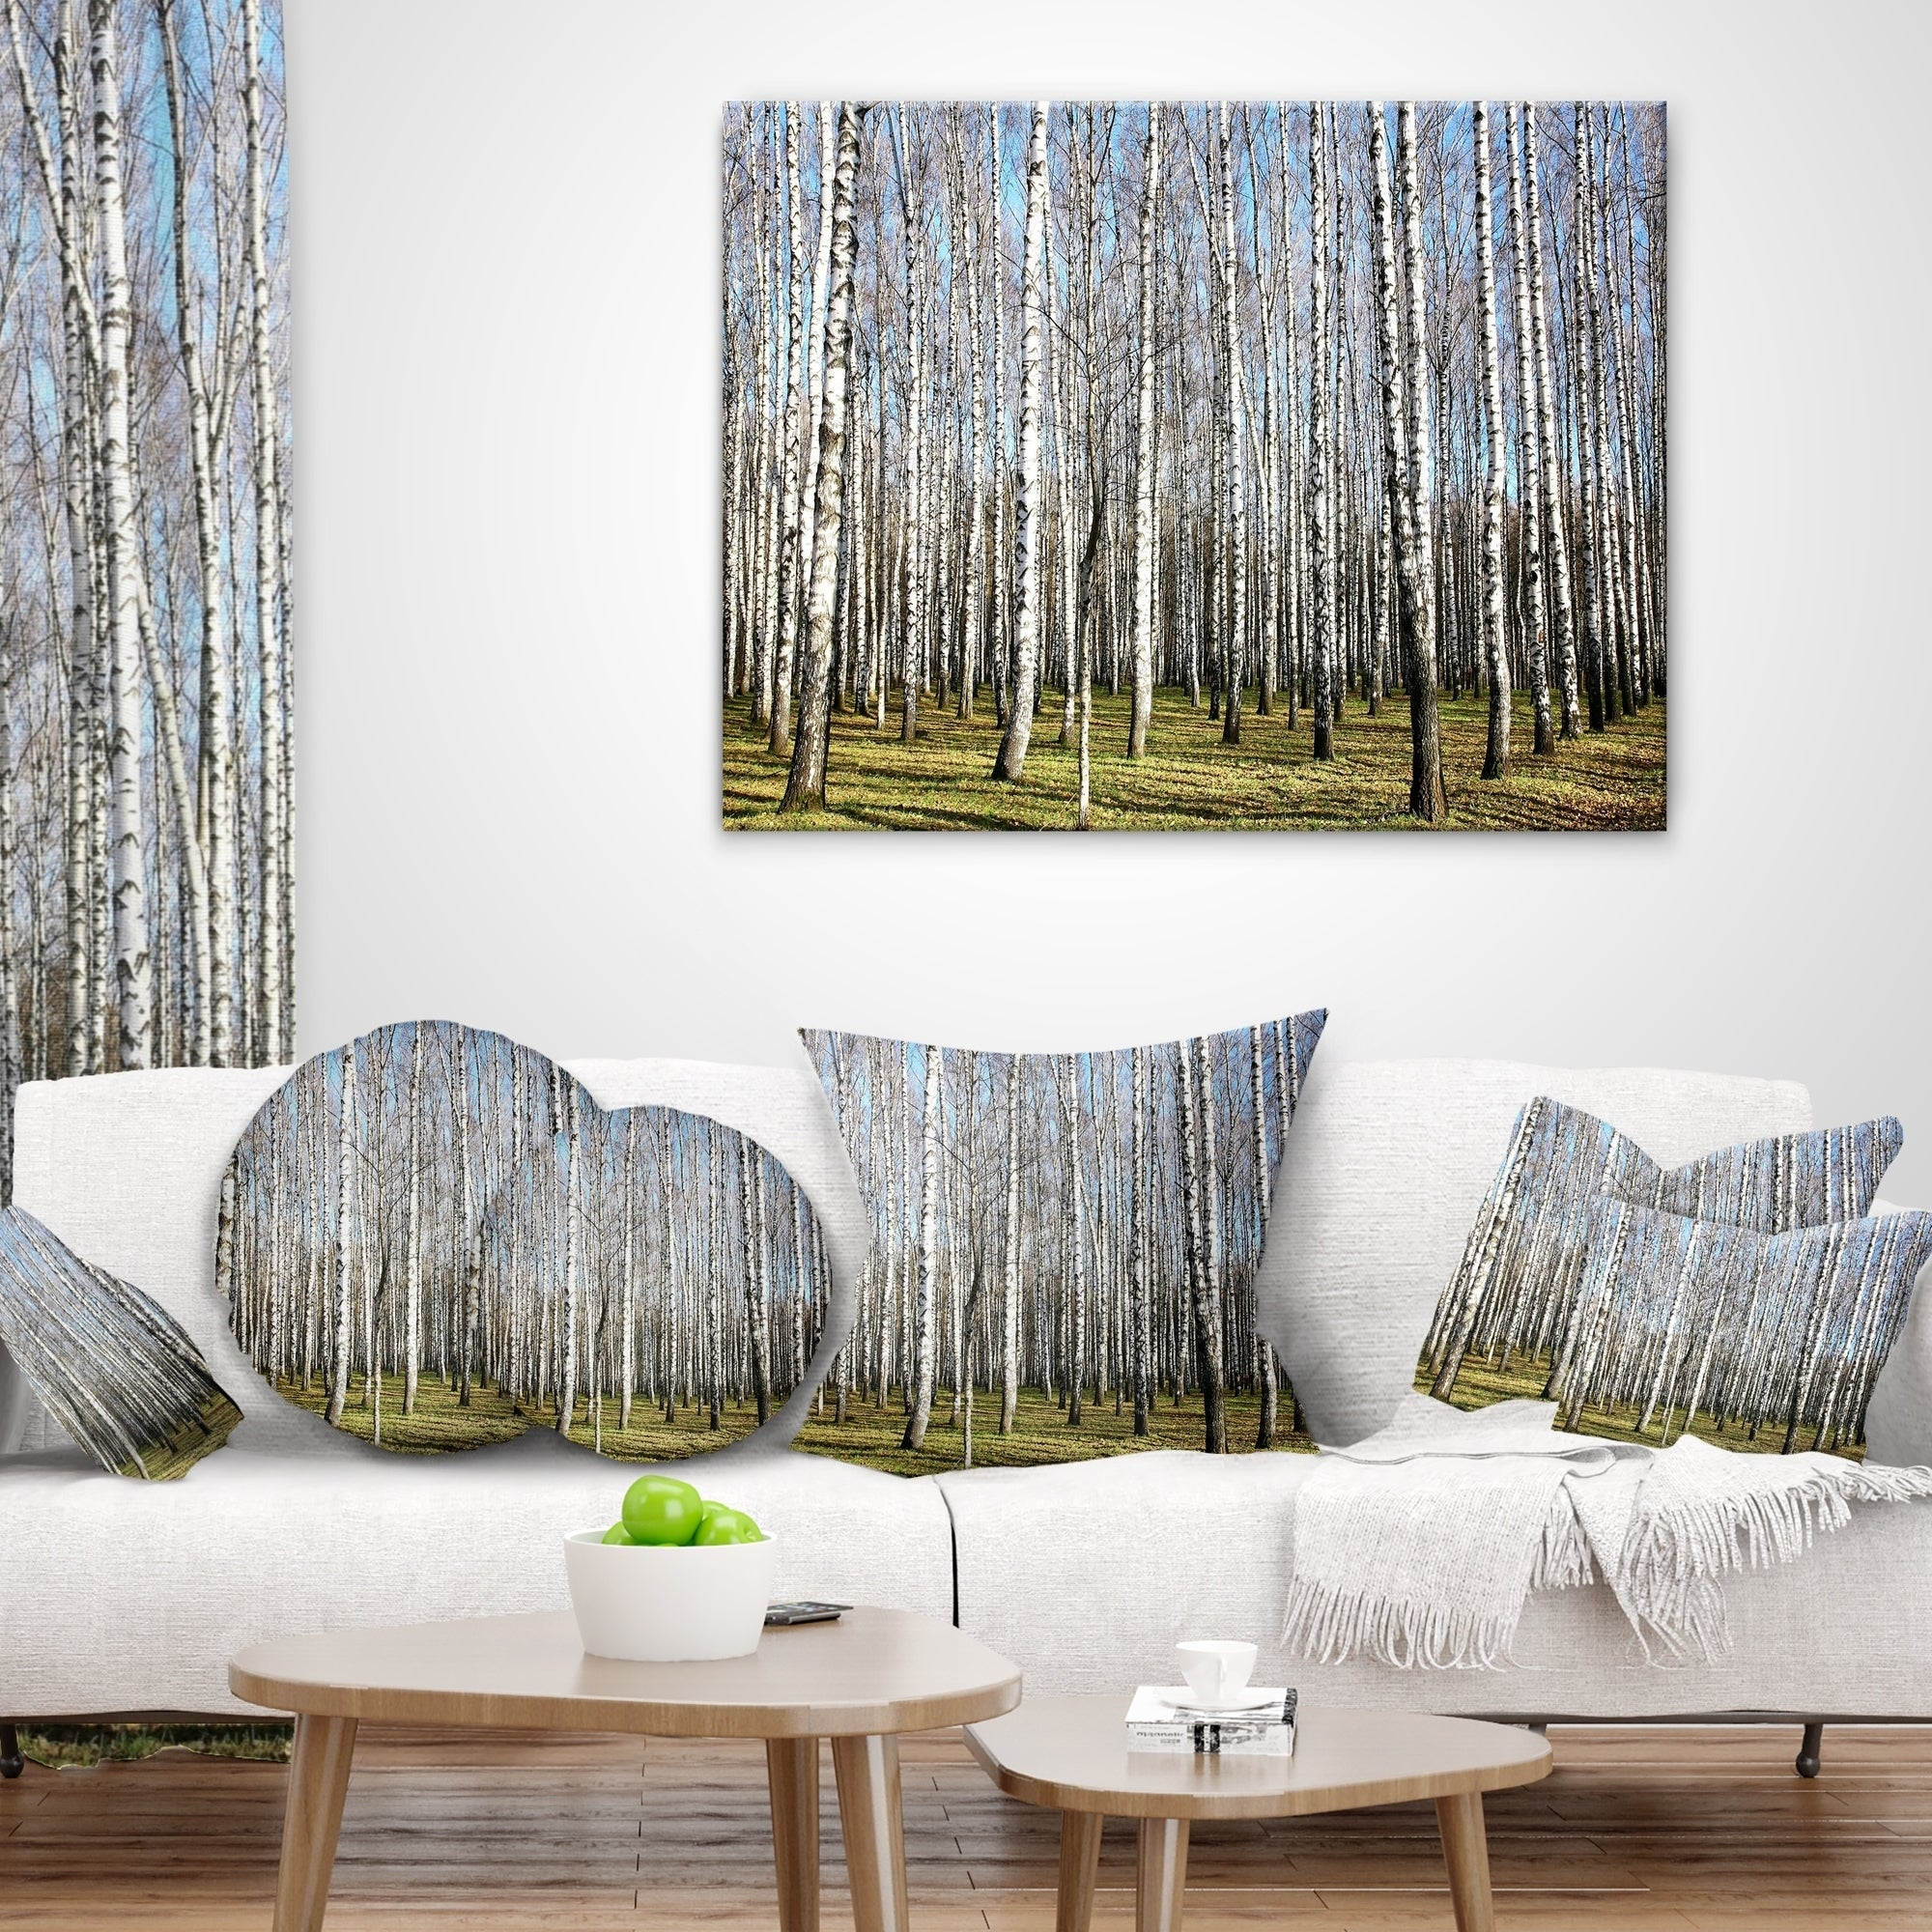 Insert Printed On Both Side Designart CU13993-20-20-C Sunny November Day in Birch Grow Modern Forest Round Cushion Cover for Living Room Sofa Throw Pillow 20